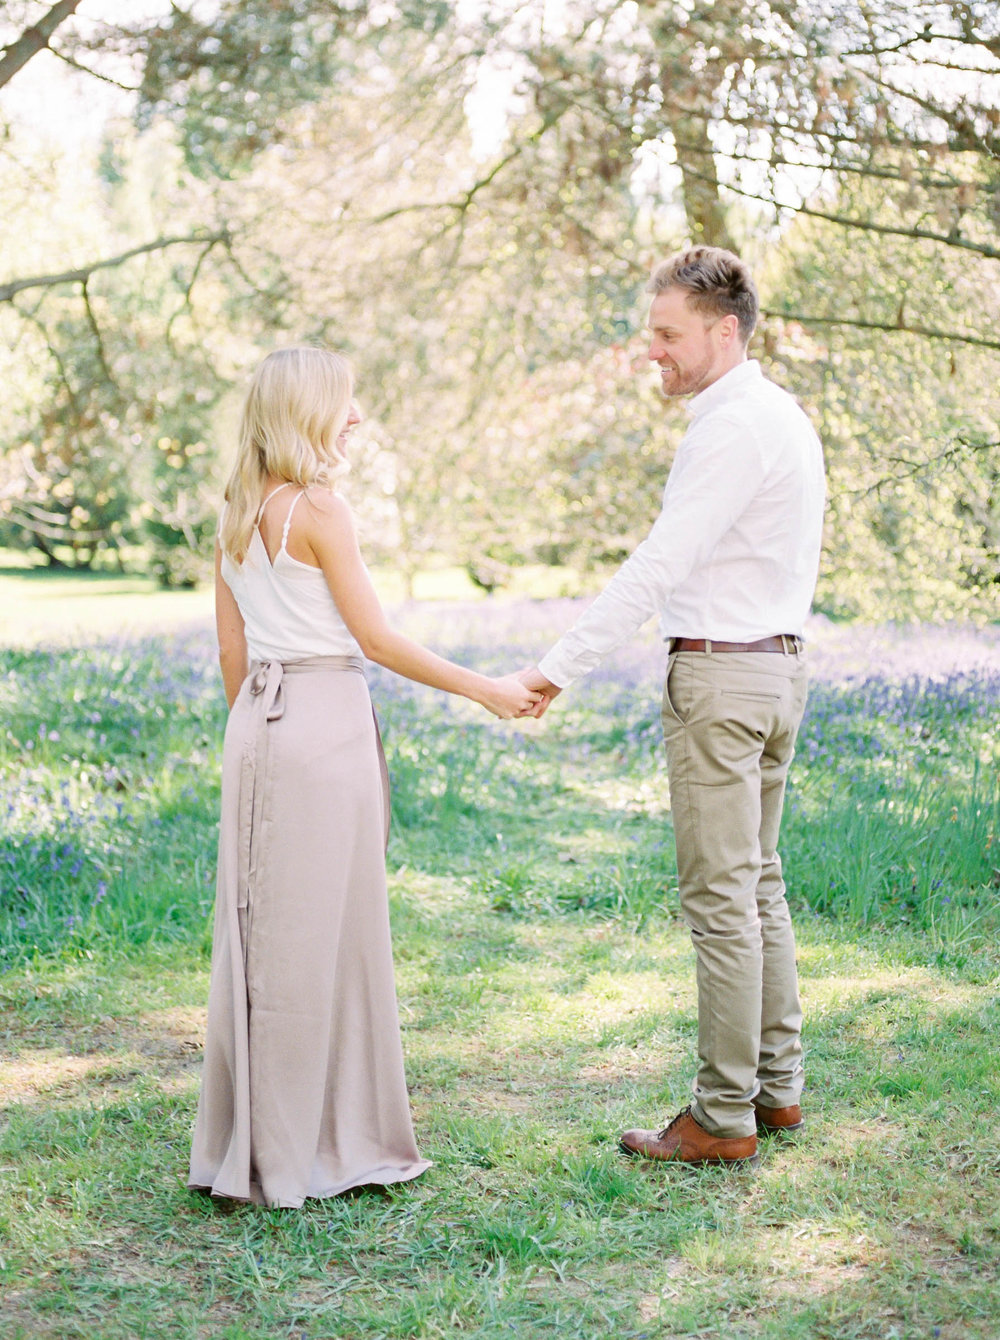 Amy O'Boyle Photography- Destination & UK Fine Art Film Wedding Photographer- Sheffield Park Garden National Trust Spring Engagement Shoot-6.jpg